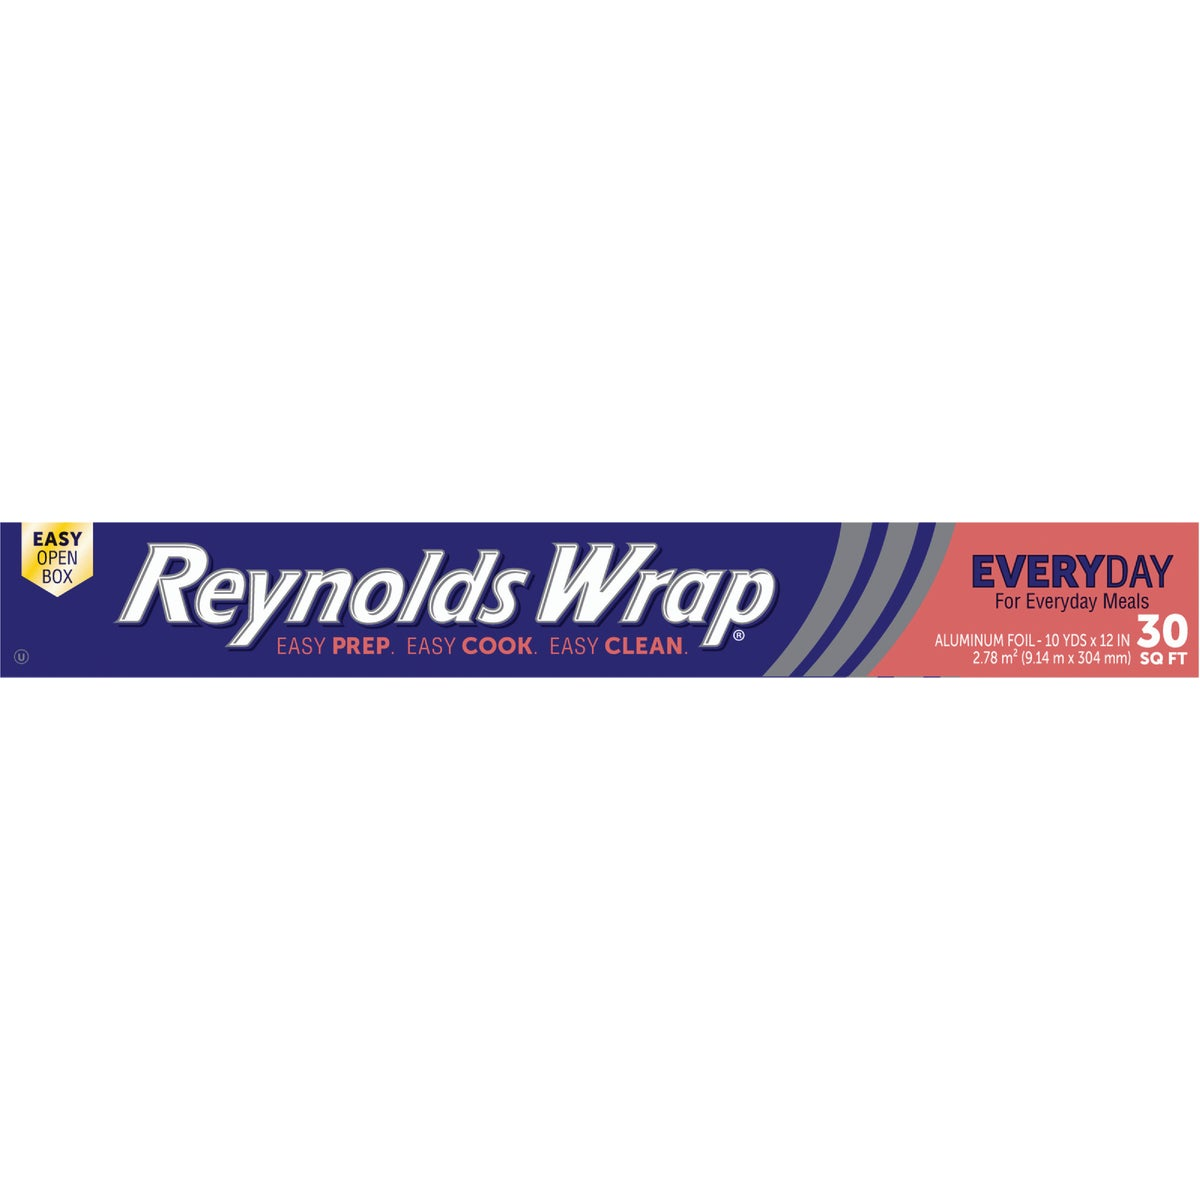 30SQ FT ALUMINUM FOIL - 8031 by Reynolds Pkg. Group